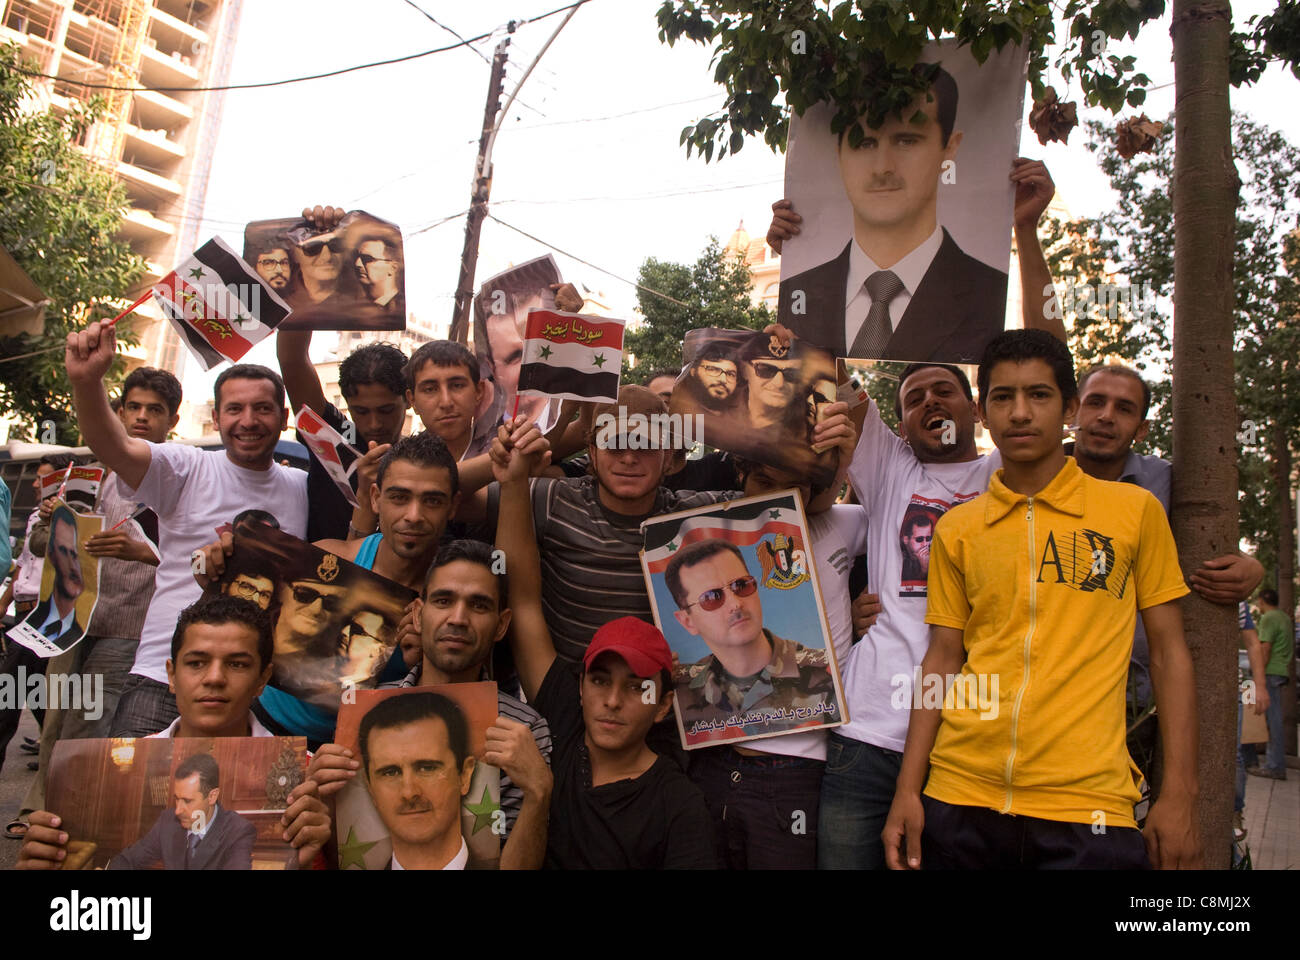 Supporters of the Syrian regime of Bashar Al-Assad during a demonstration in Hamra, west Beirut, Lebanon on 23.10.2011. - Stock Image